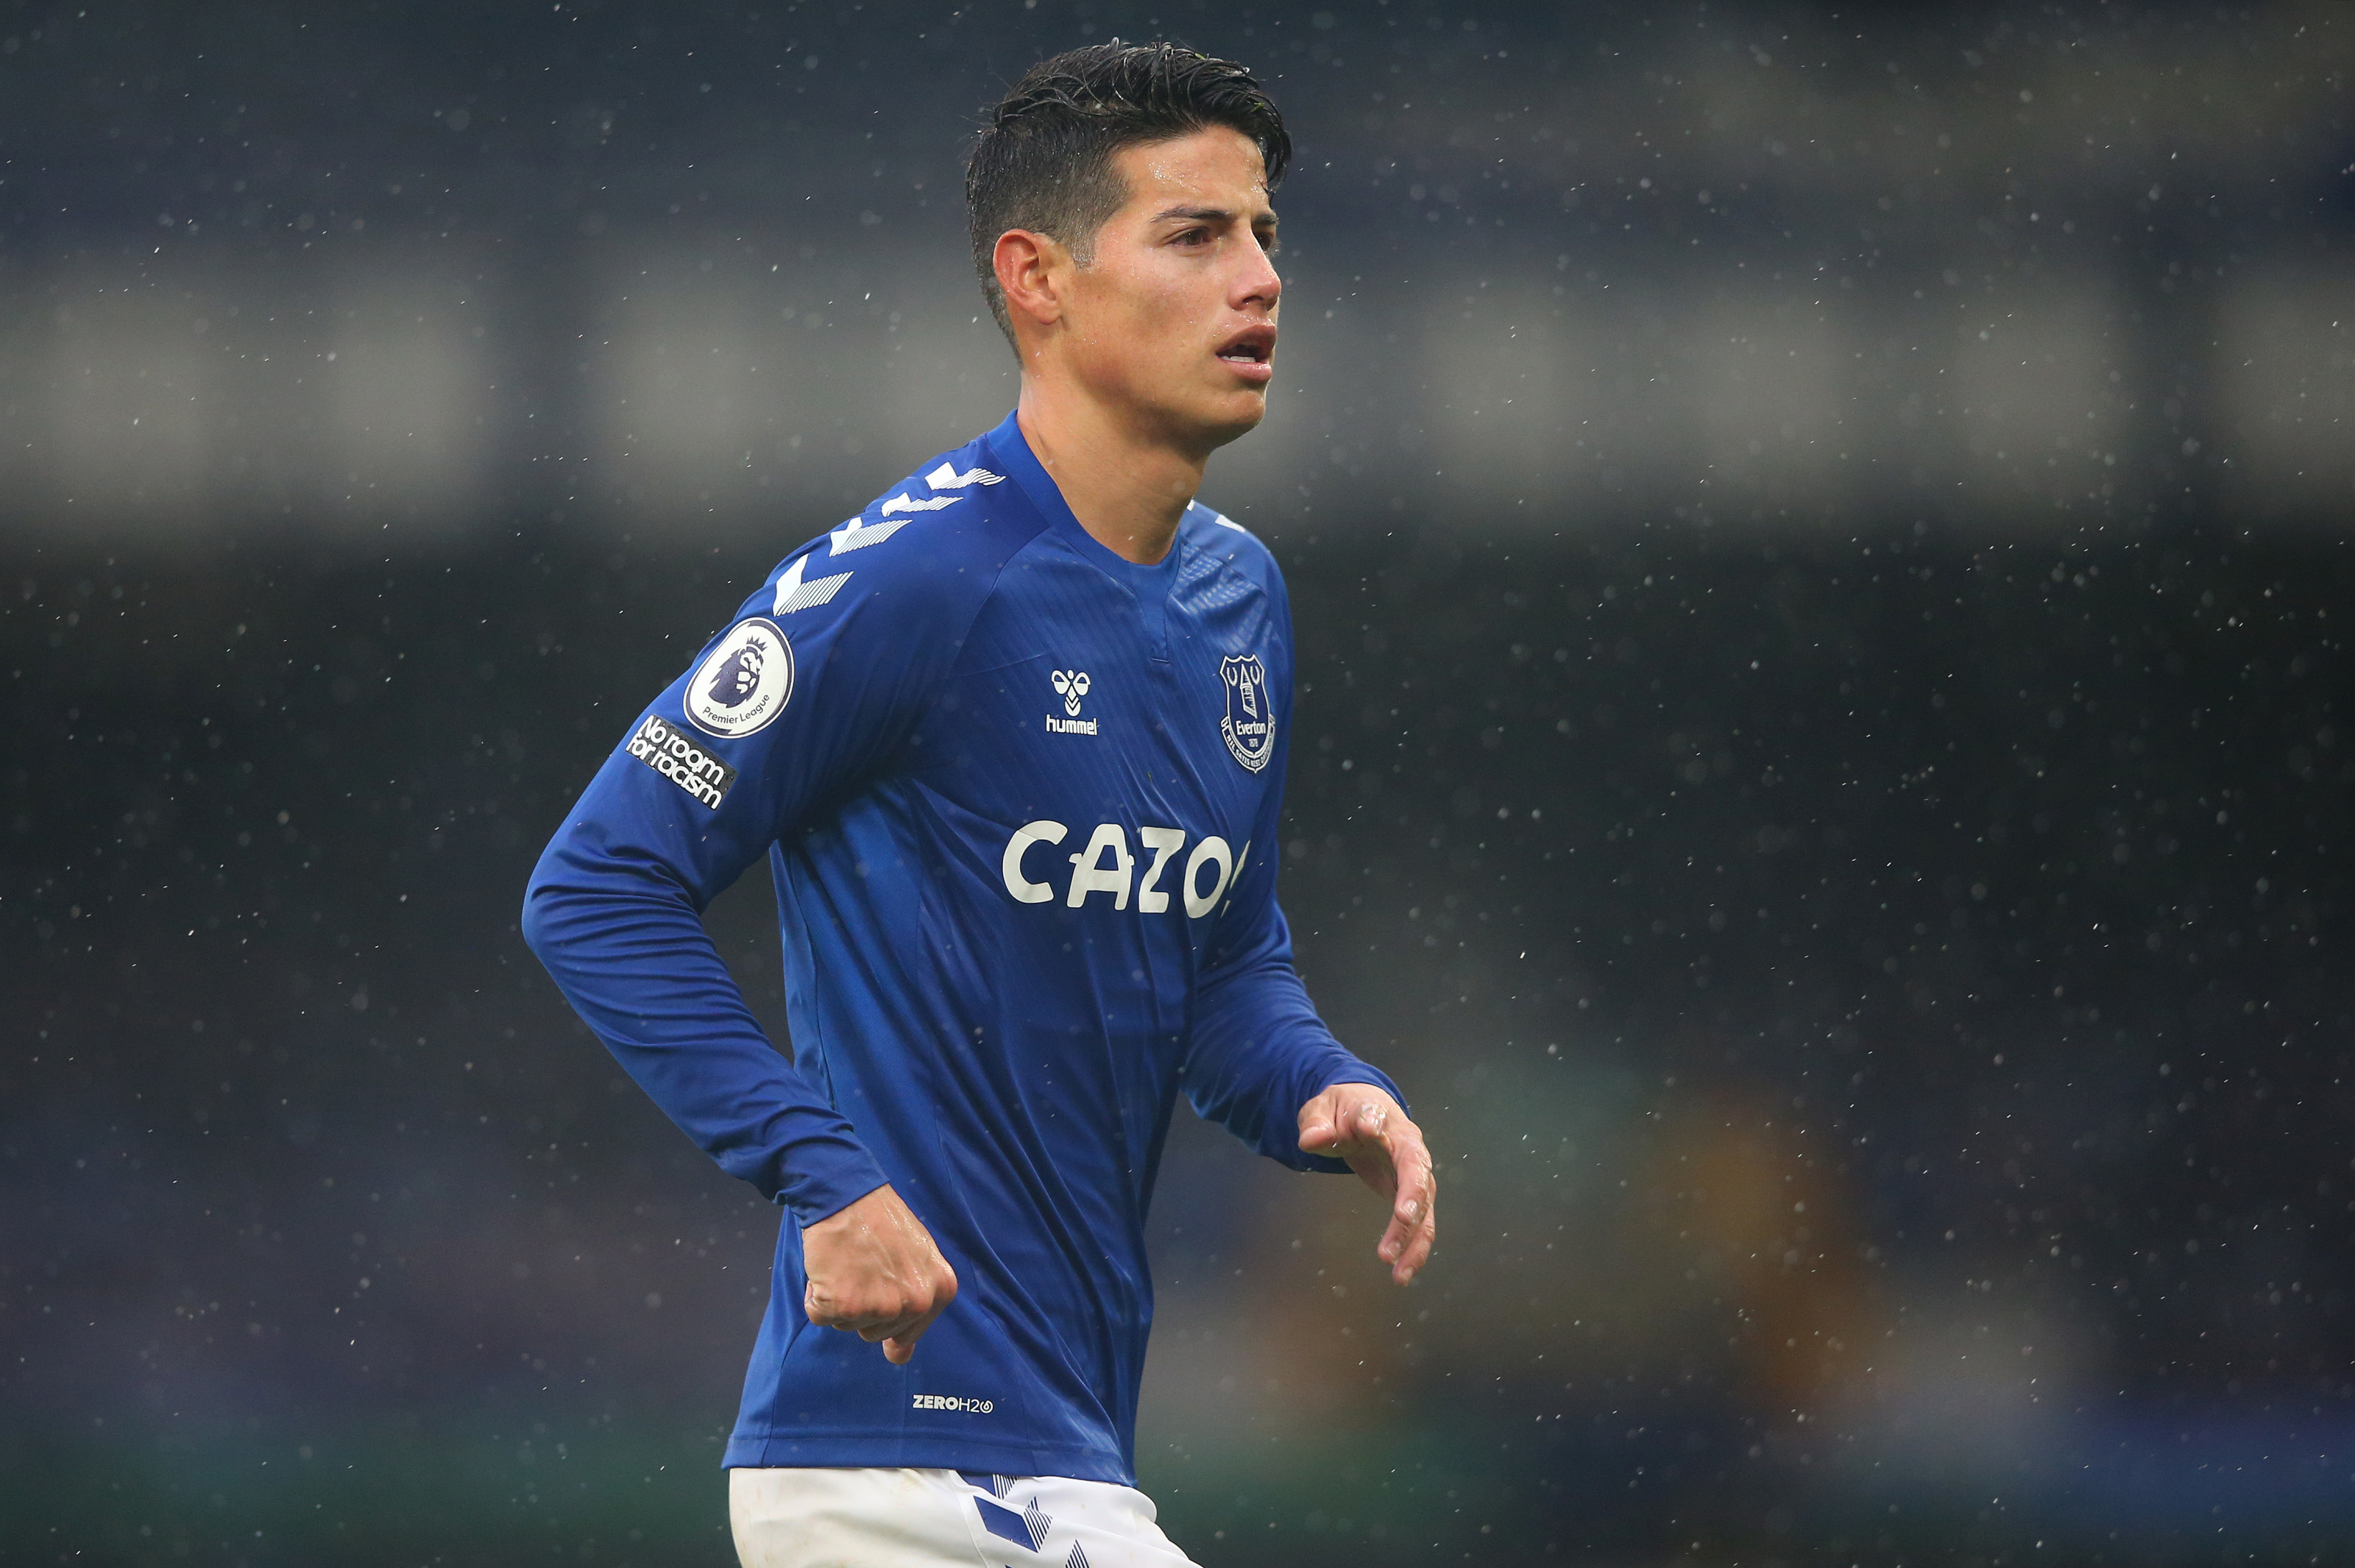 Top 5 Everton Players On Fifa 21 James Rodriguez Underrated Richarlison Robbed